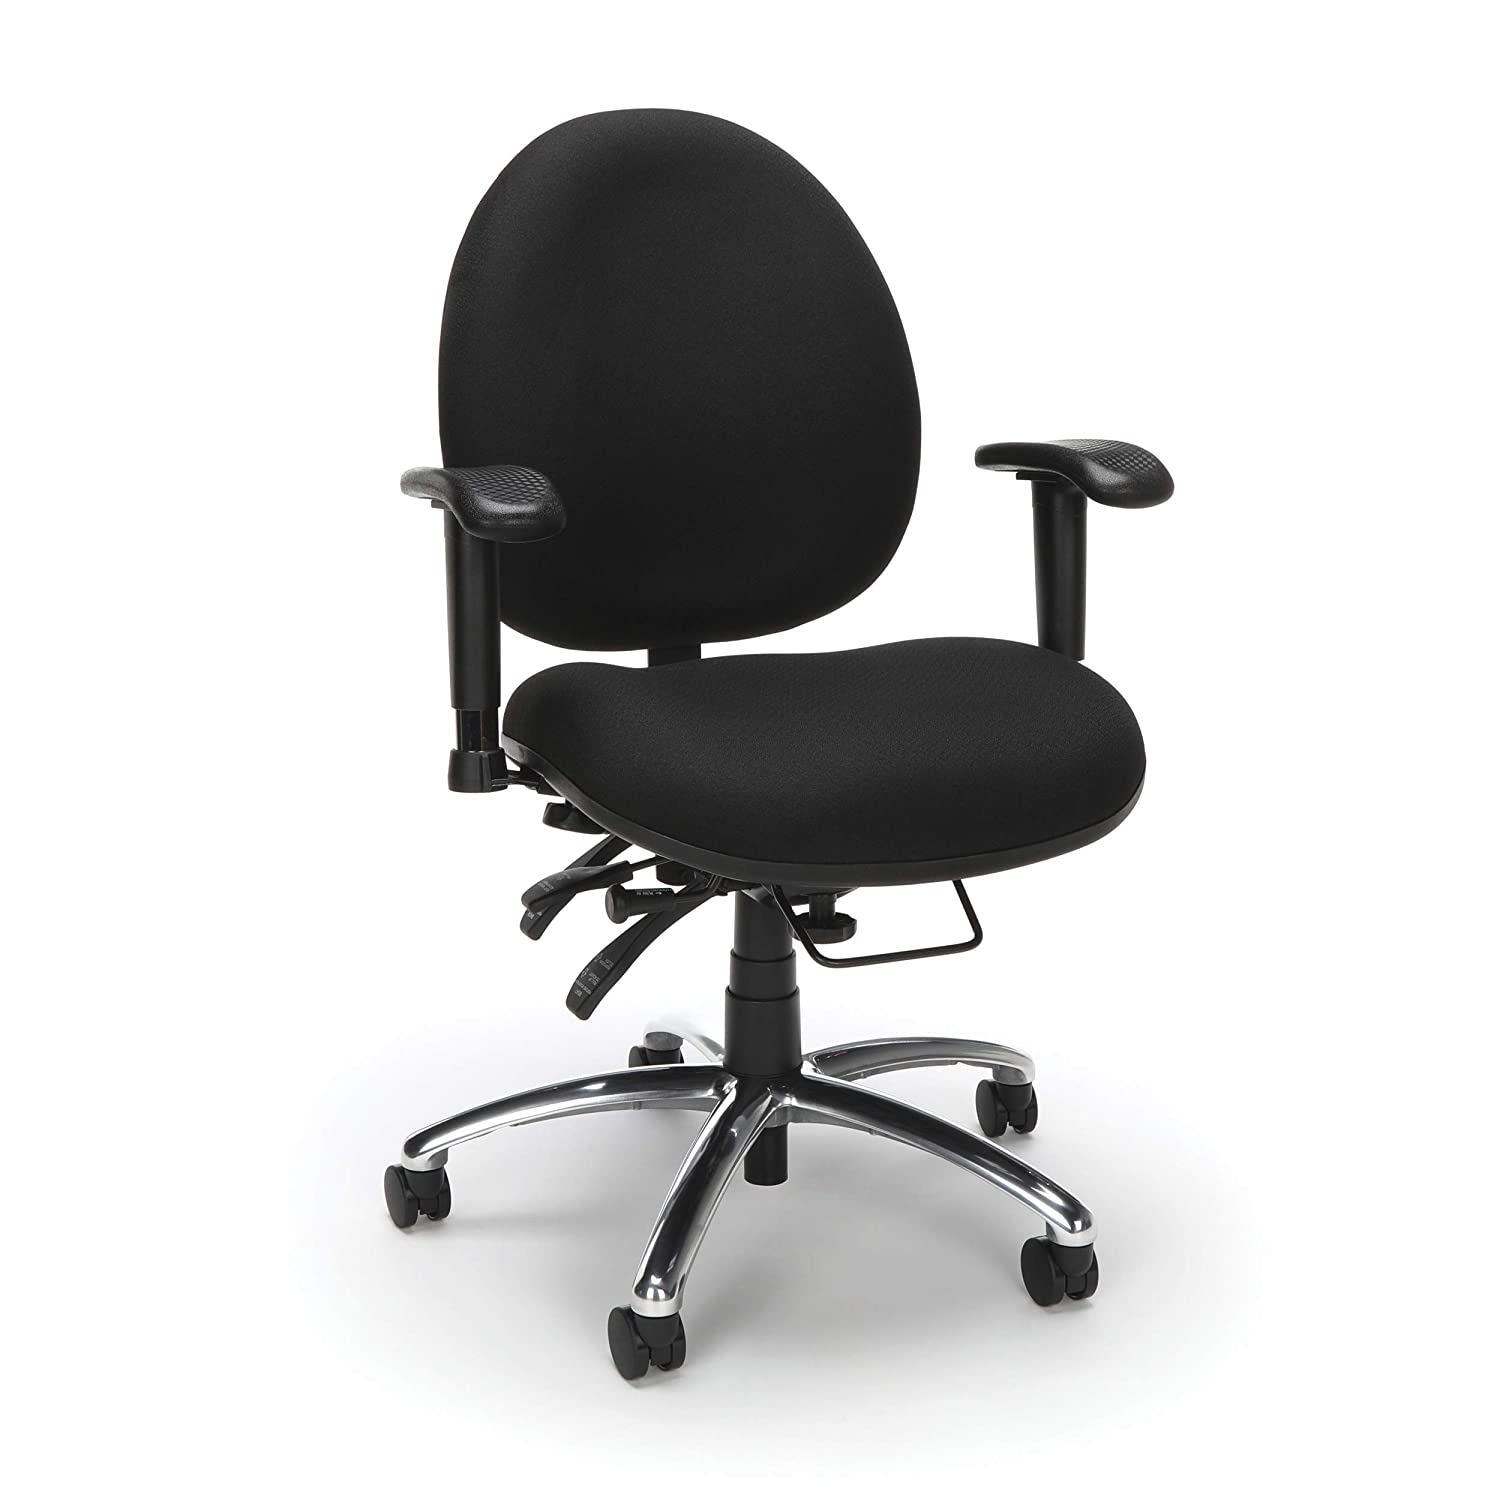 Amazon Com Ofm Core Collection 24 Hour Big And Tall Ergonomic Task Chair Computer Desk Swivel Chair With Arms In Black Furniture Decor